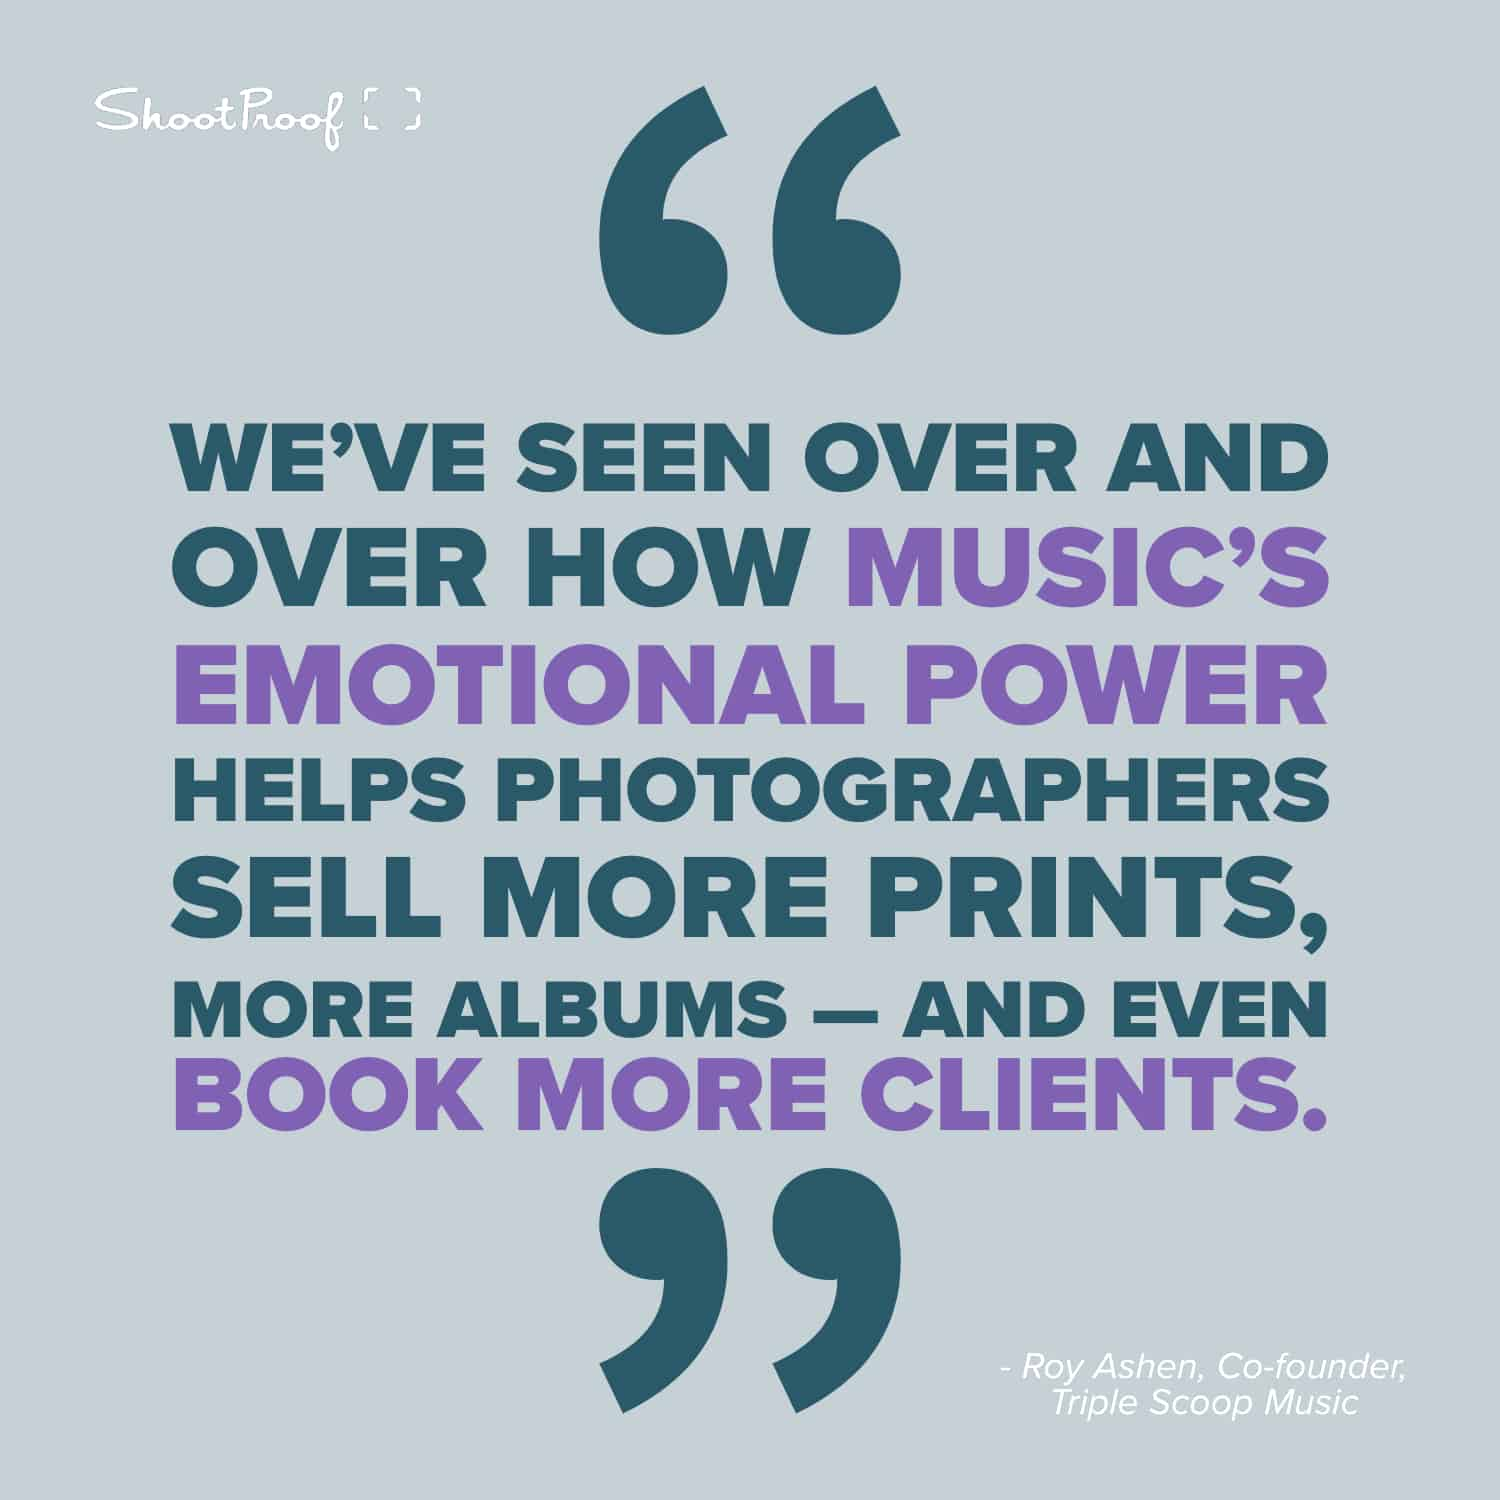 Print Sales Soar When You Pair Your Photos With Powerful Music